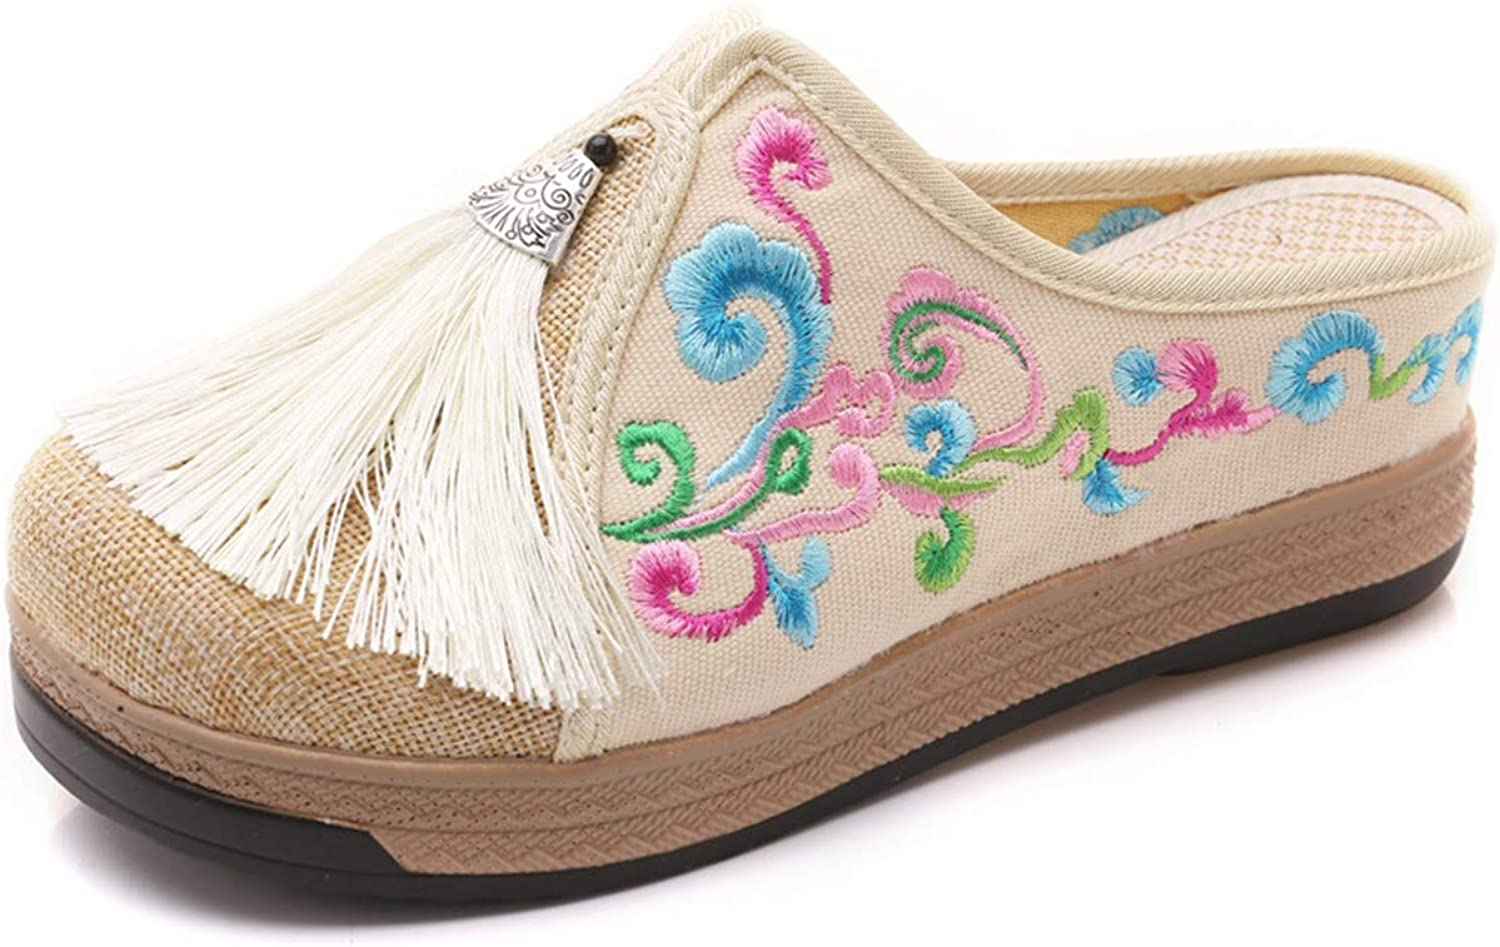 Zarbrina Womens Clogs Mules Sandals Hantang Dynasties Casual Clouds Embroidery Linen Cotton Tassel Ladies Canvas Walking Slide on shoes